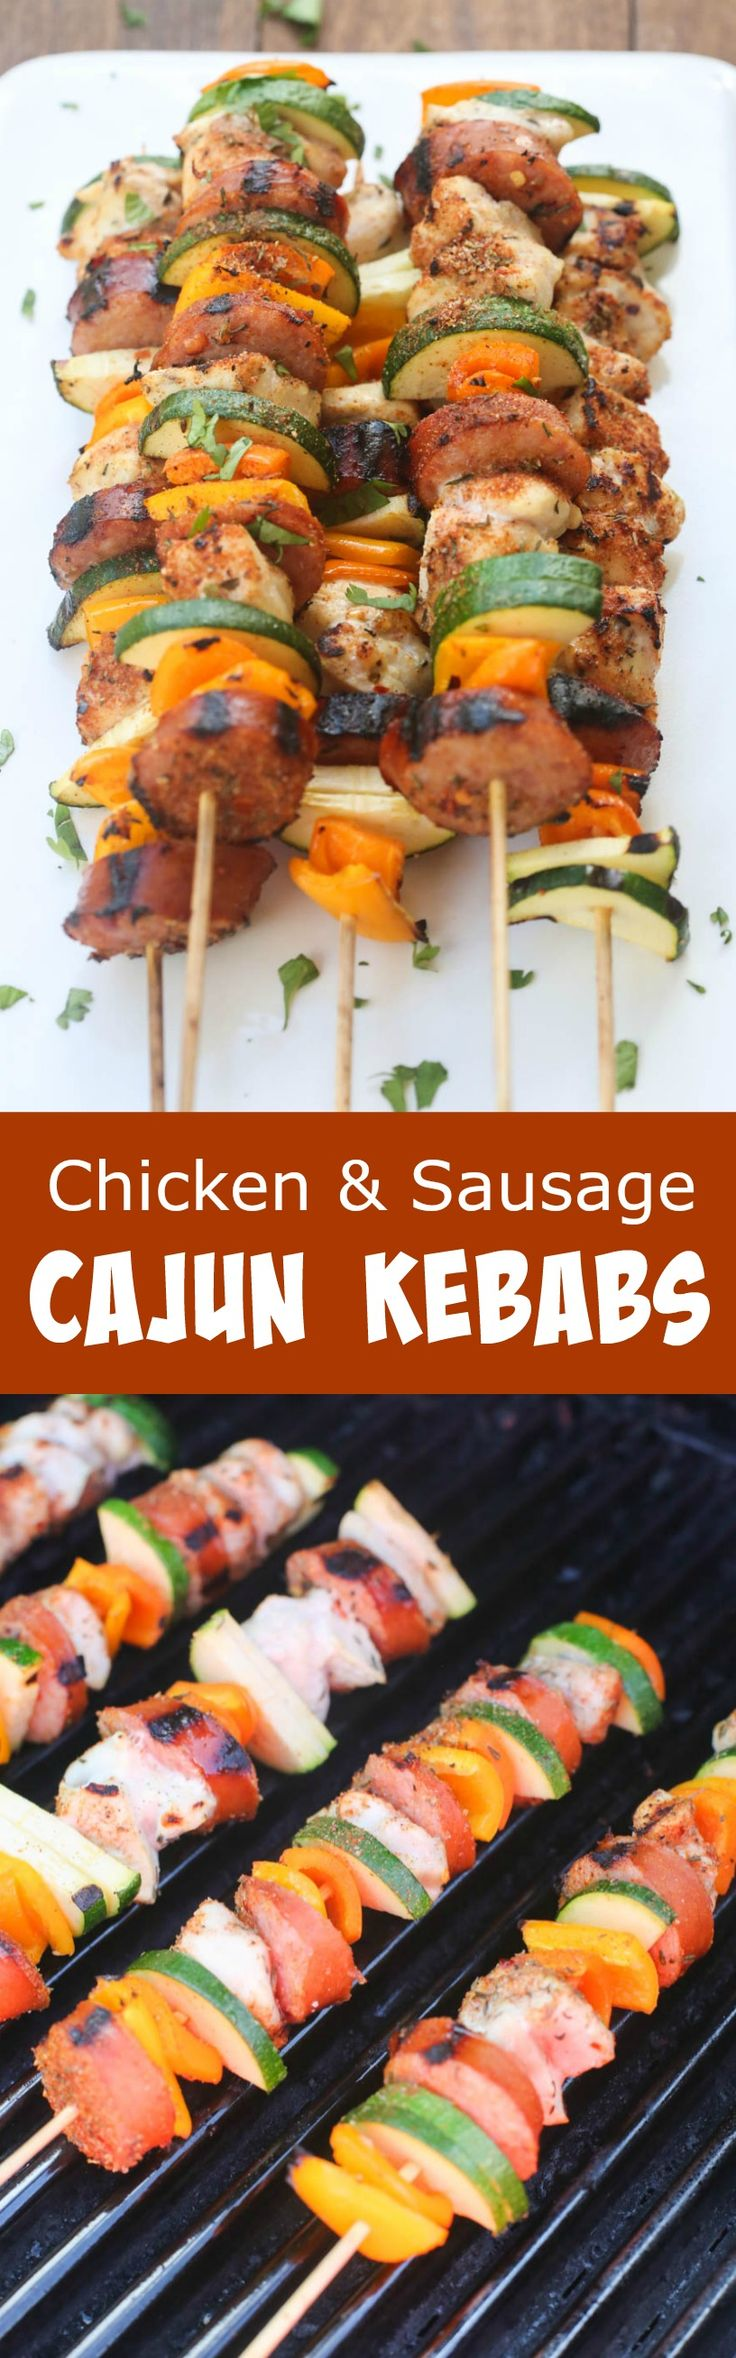 Grilled Cajun Chicken and Sausage Kebabs are packed with bold and spicy cajun flavors. | Tastes Better From Scratch